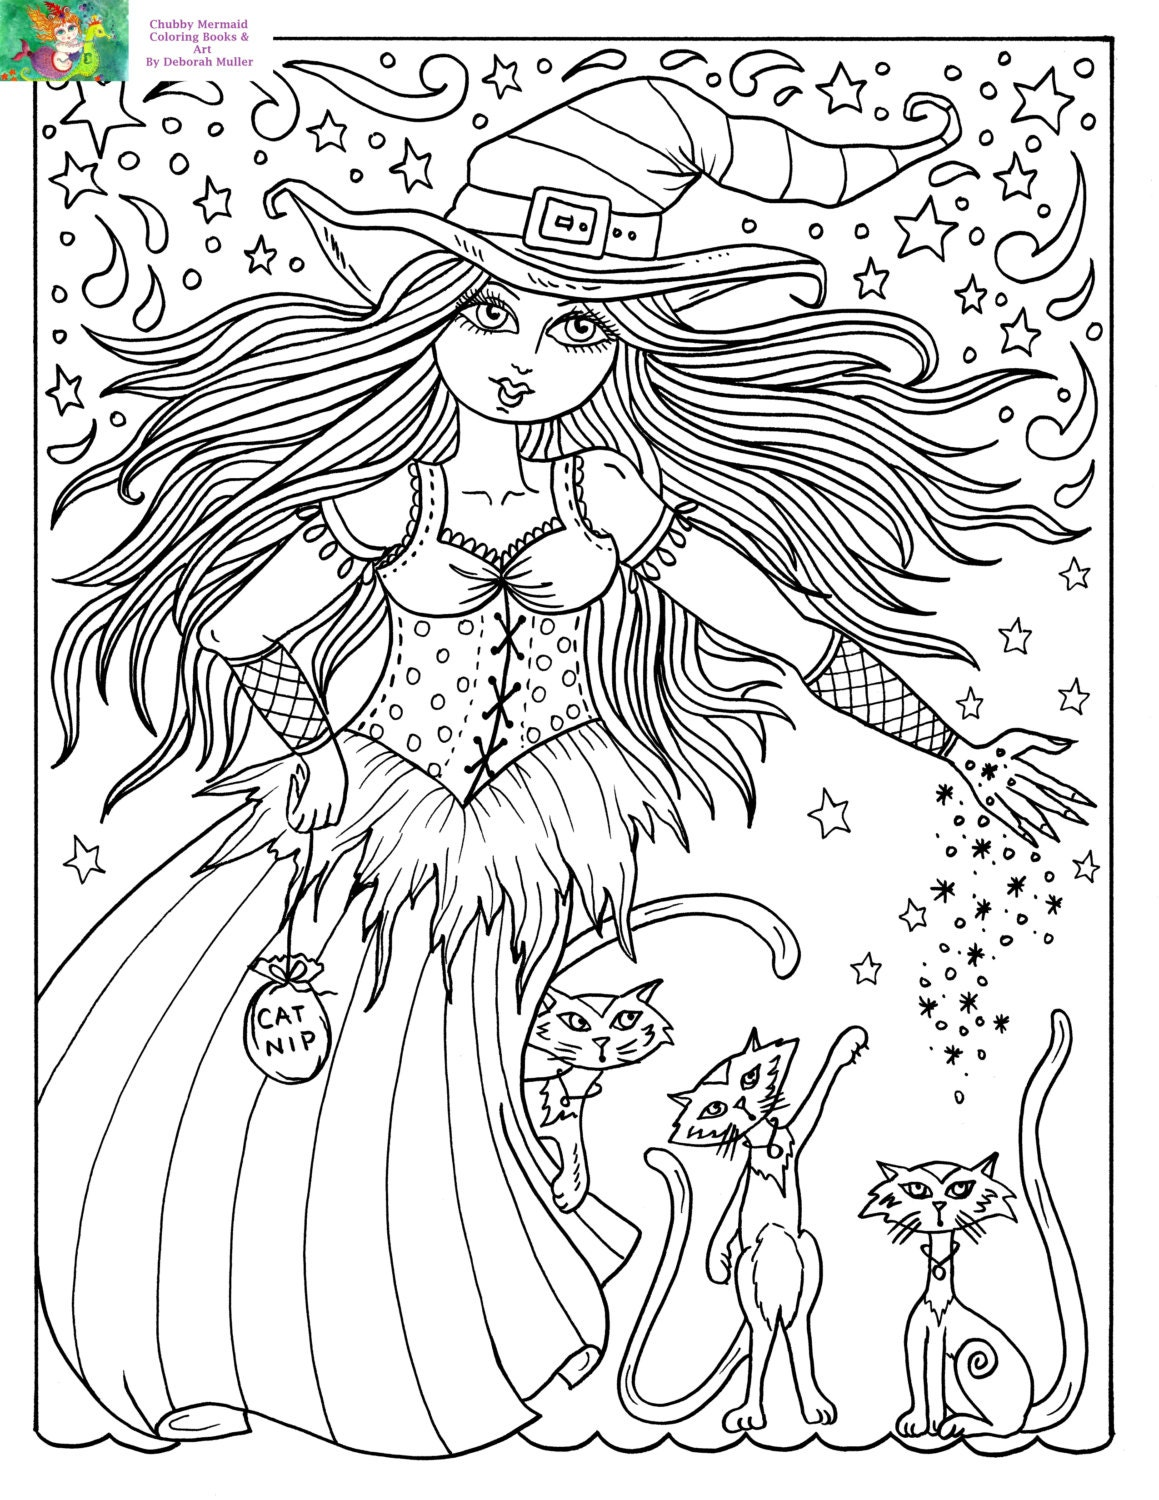 Downloadable Coloring Page Witch and Cats halloween Fun